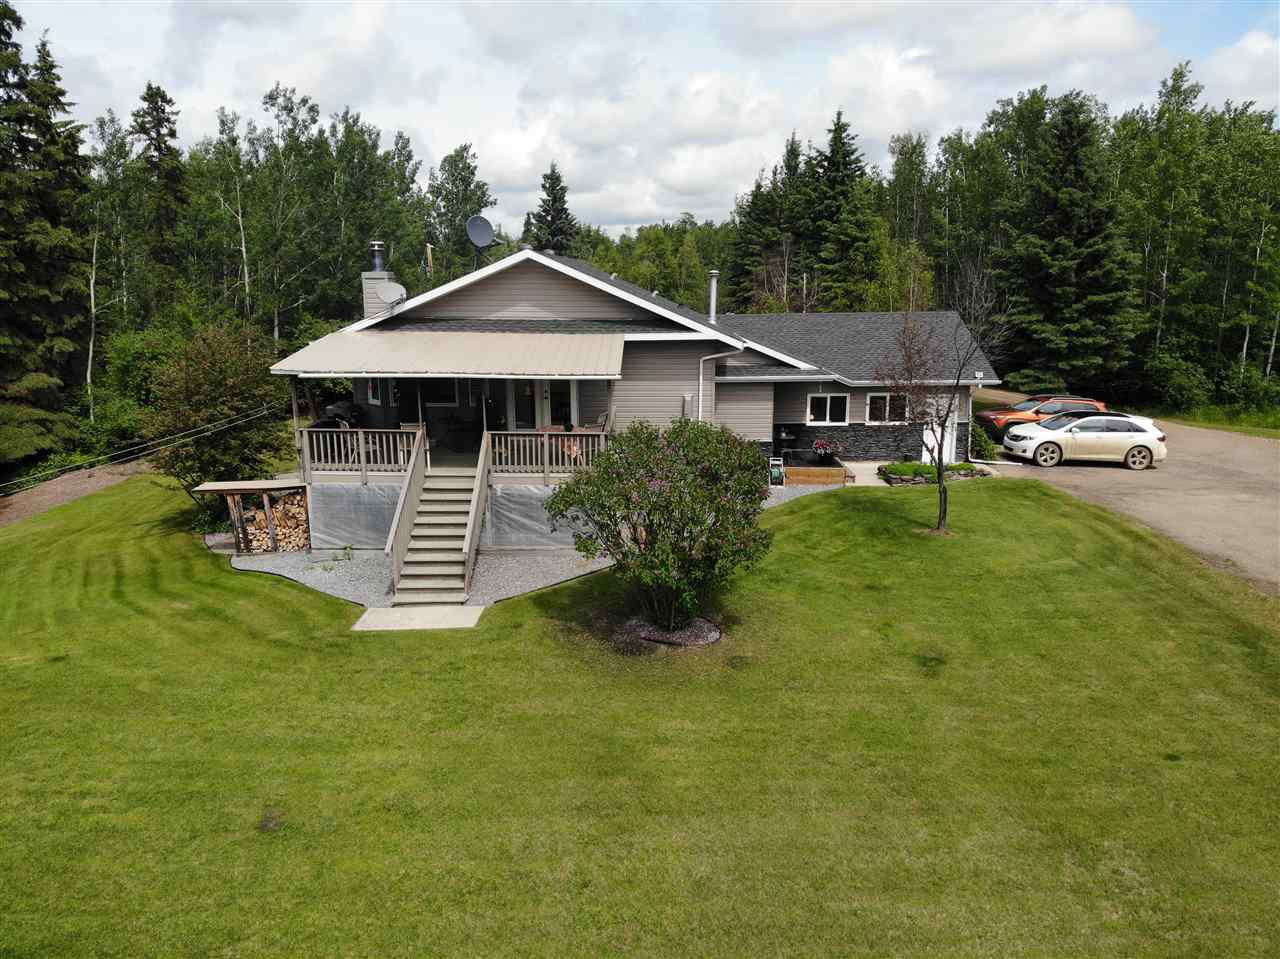 Main Photo: 274043 Twp Rd 480: Rural Wetaskiwin County House for sale : MLS®# E4155743